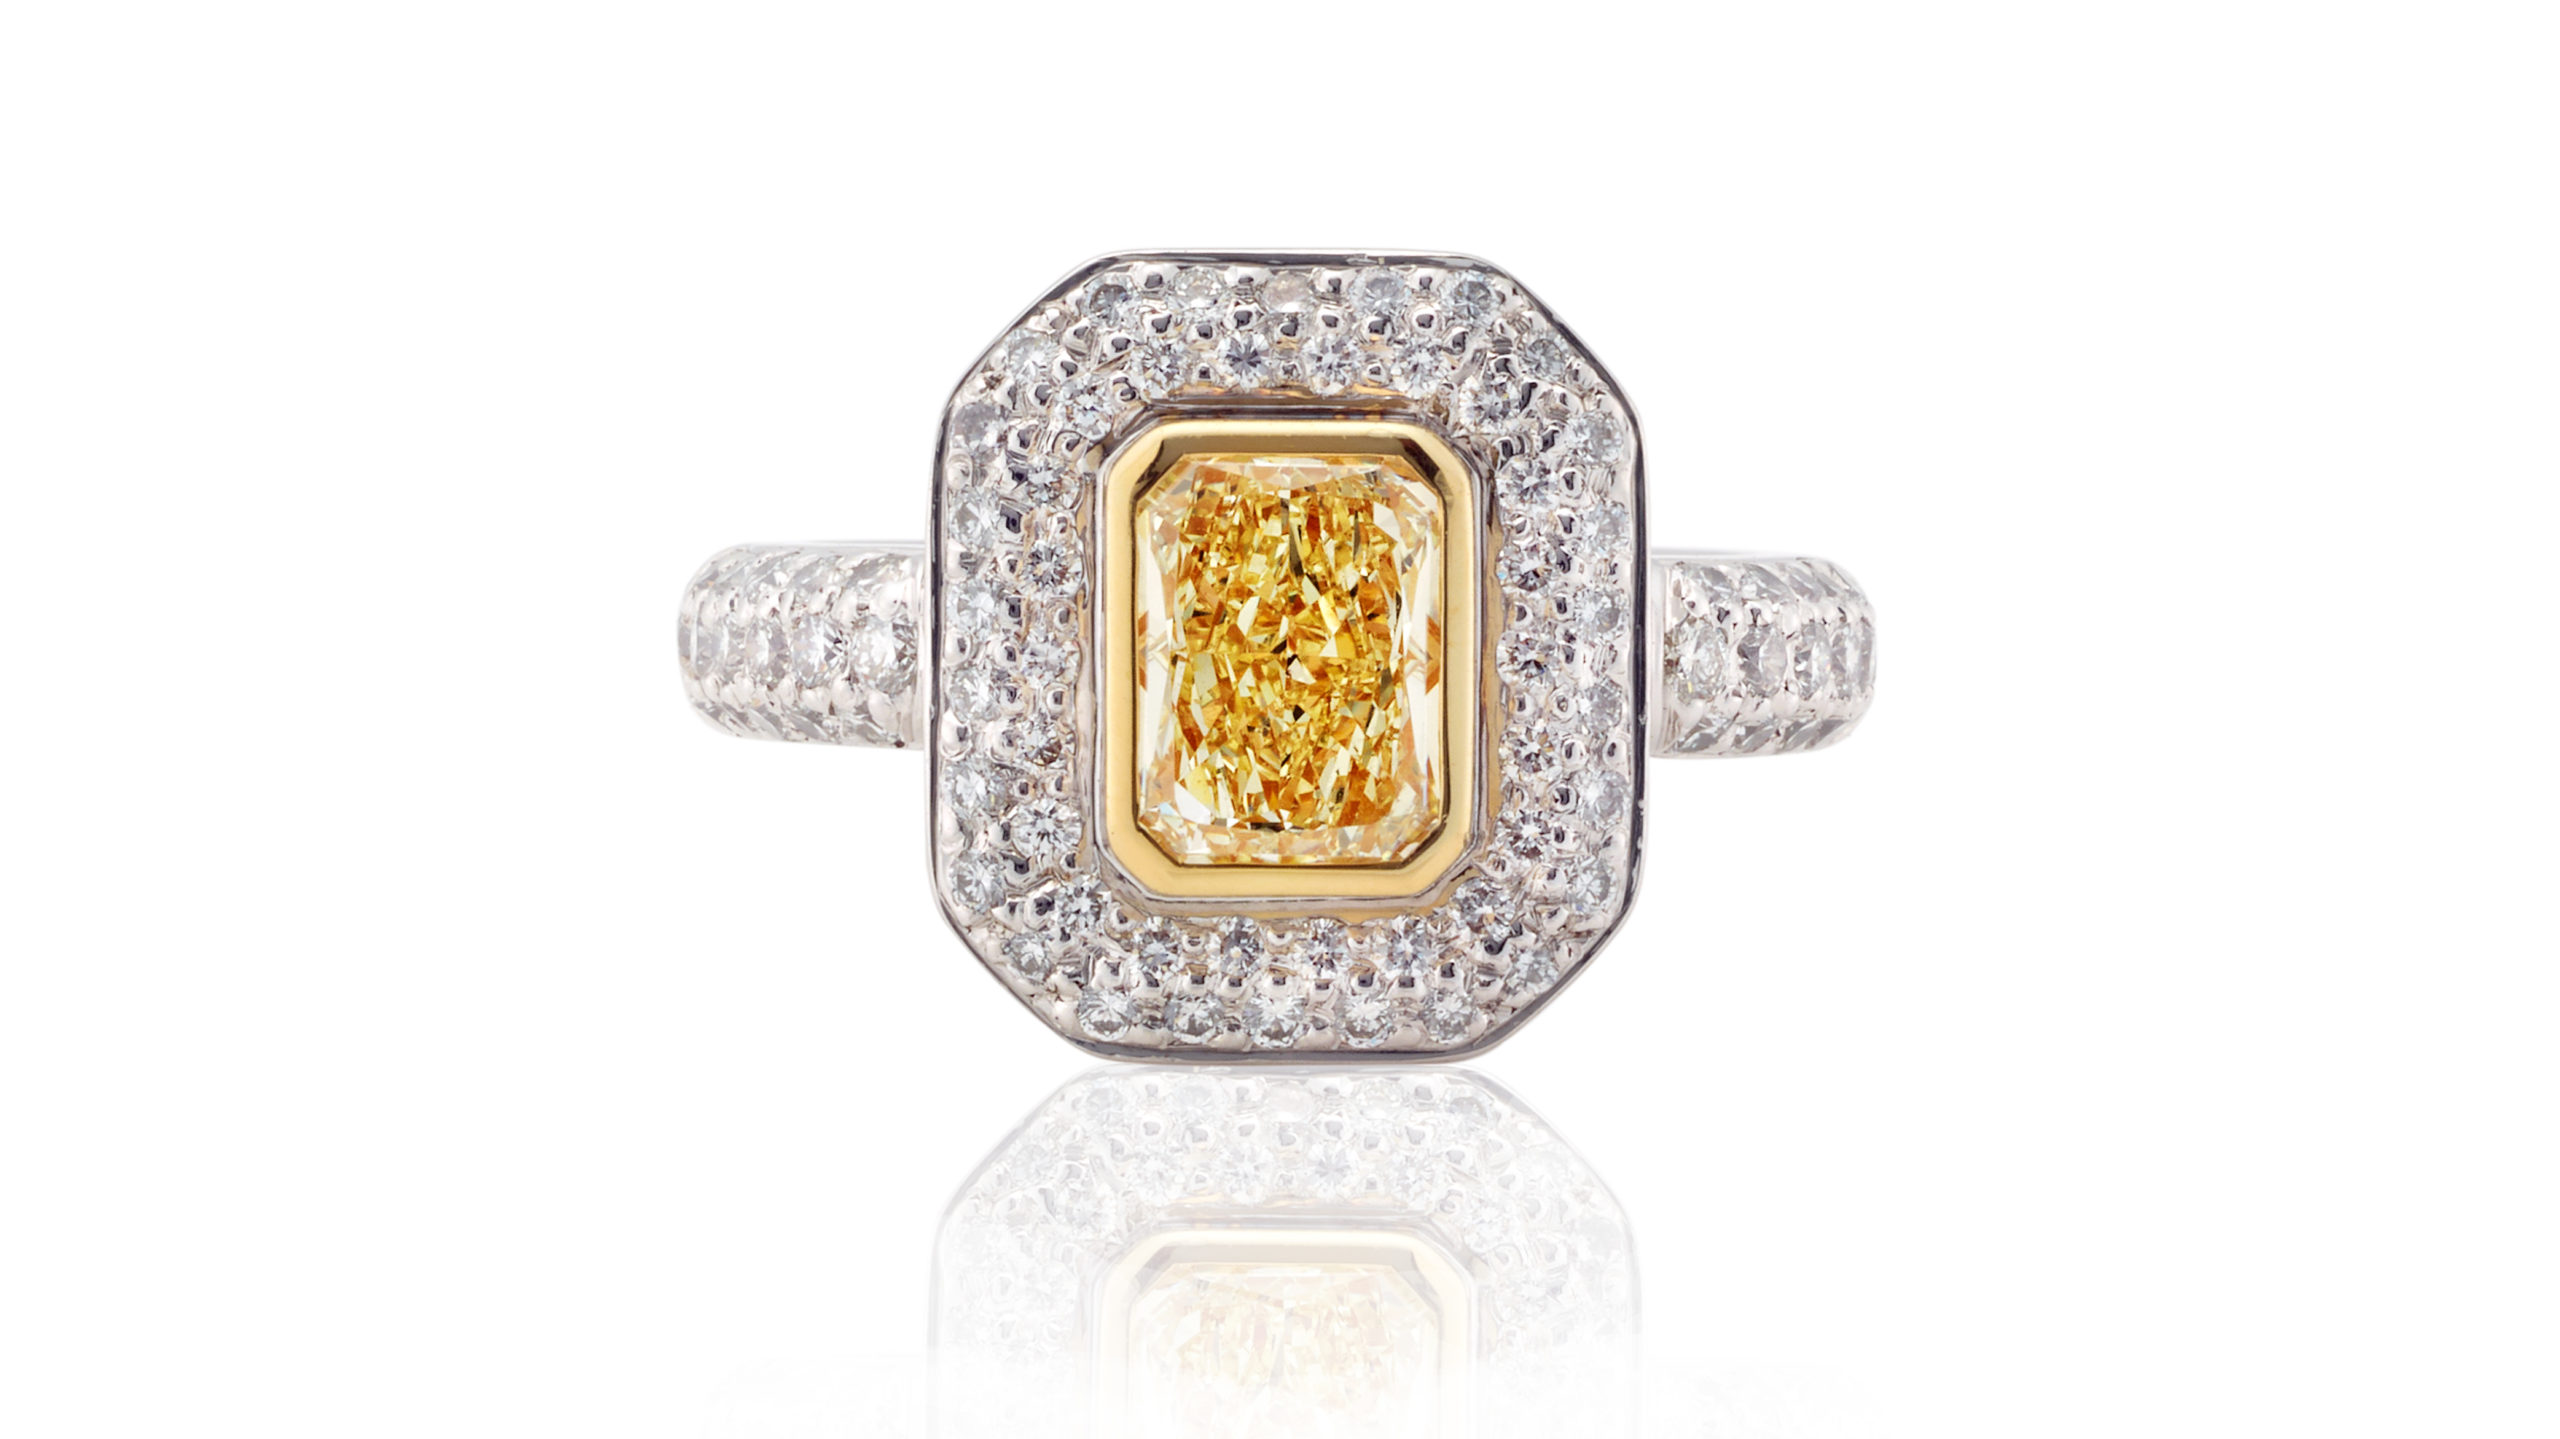 Radiant Yellow Diamond Halo Ring |White Gold Diamond Dress Ring | A Radiant Cut Yellow Diamond Surrounded By A Halo Of White Diamonds